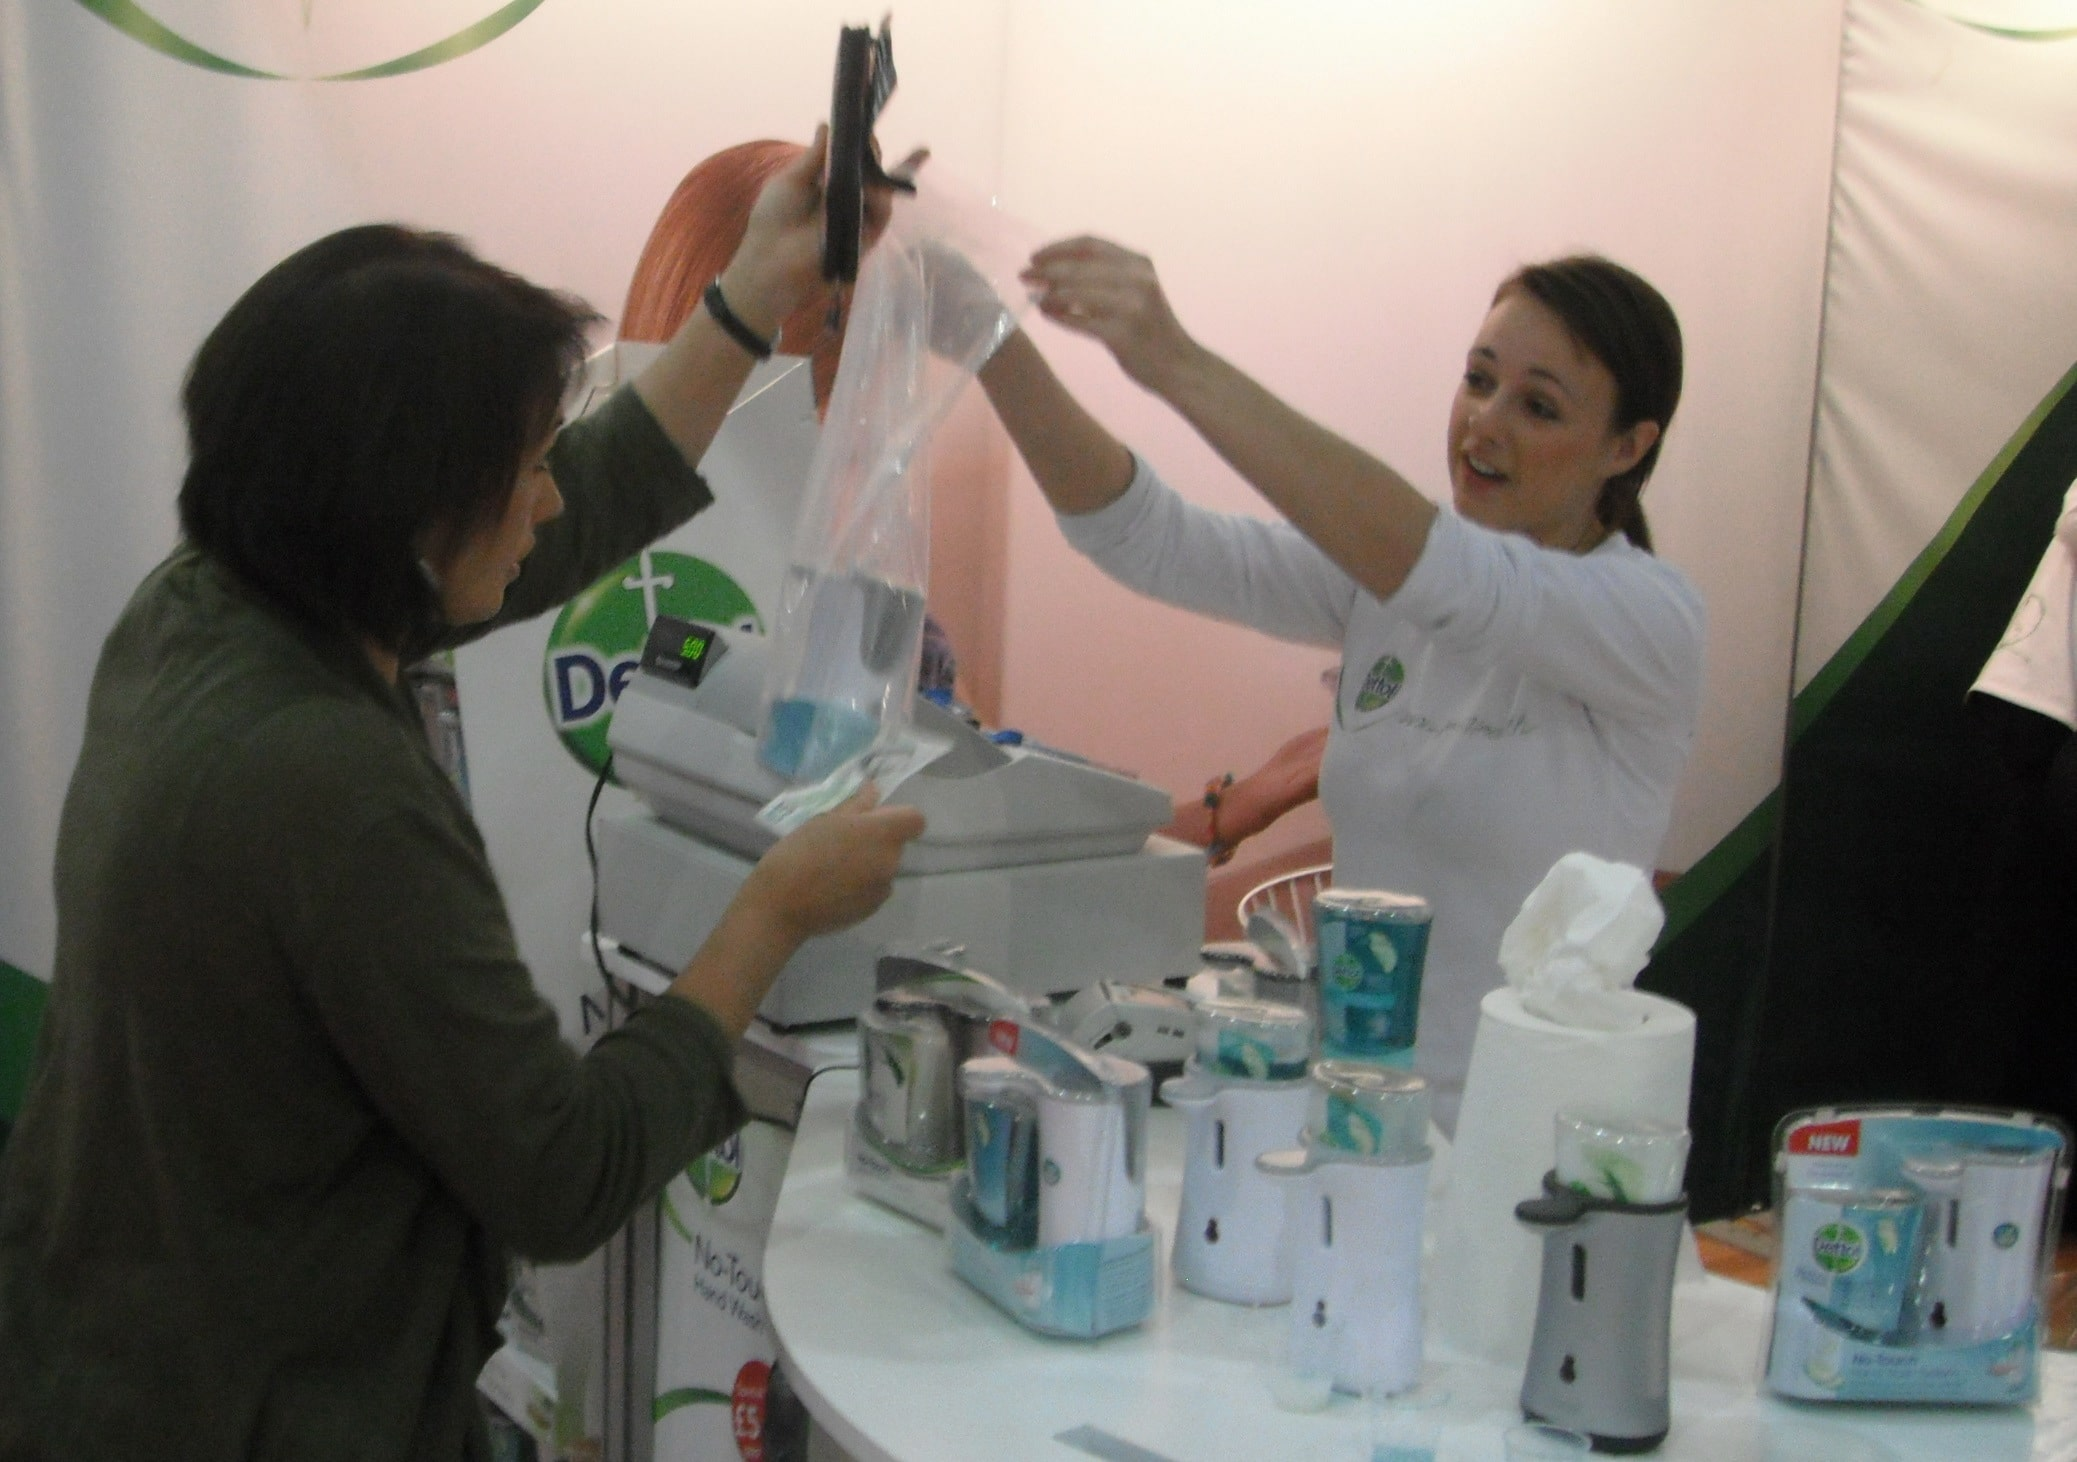 Product demonstration of Dettol No-Touch at The Ideal Home Show